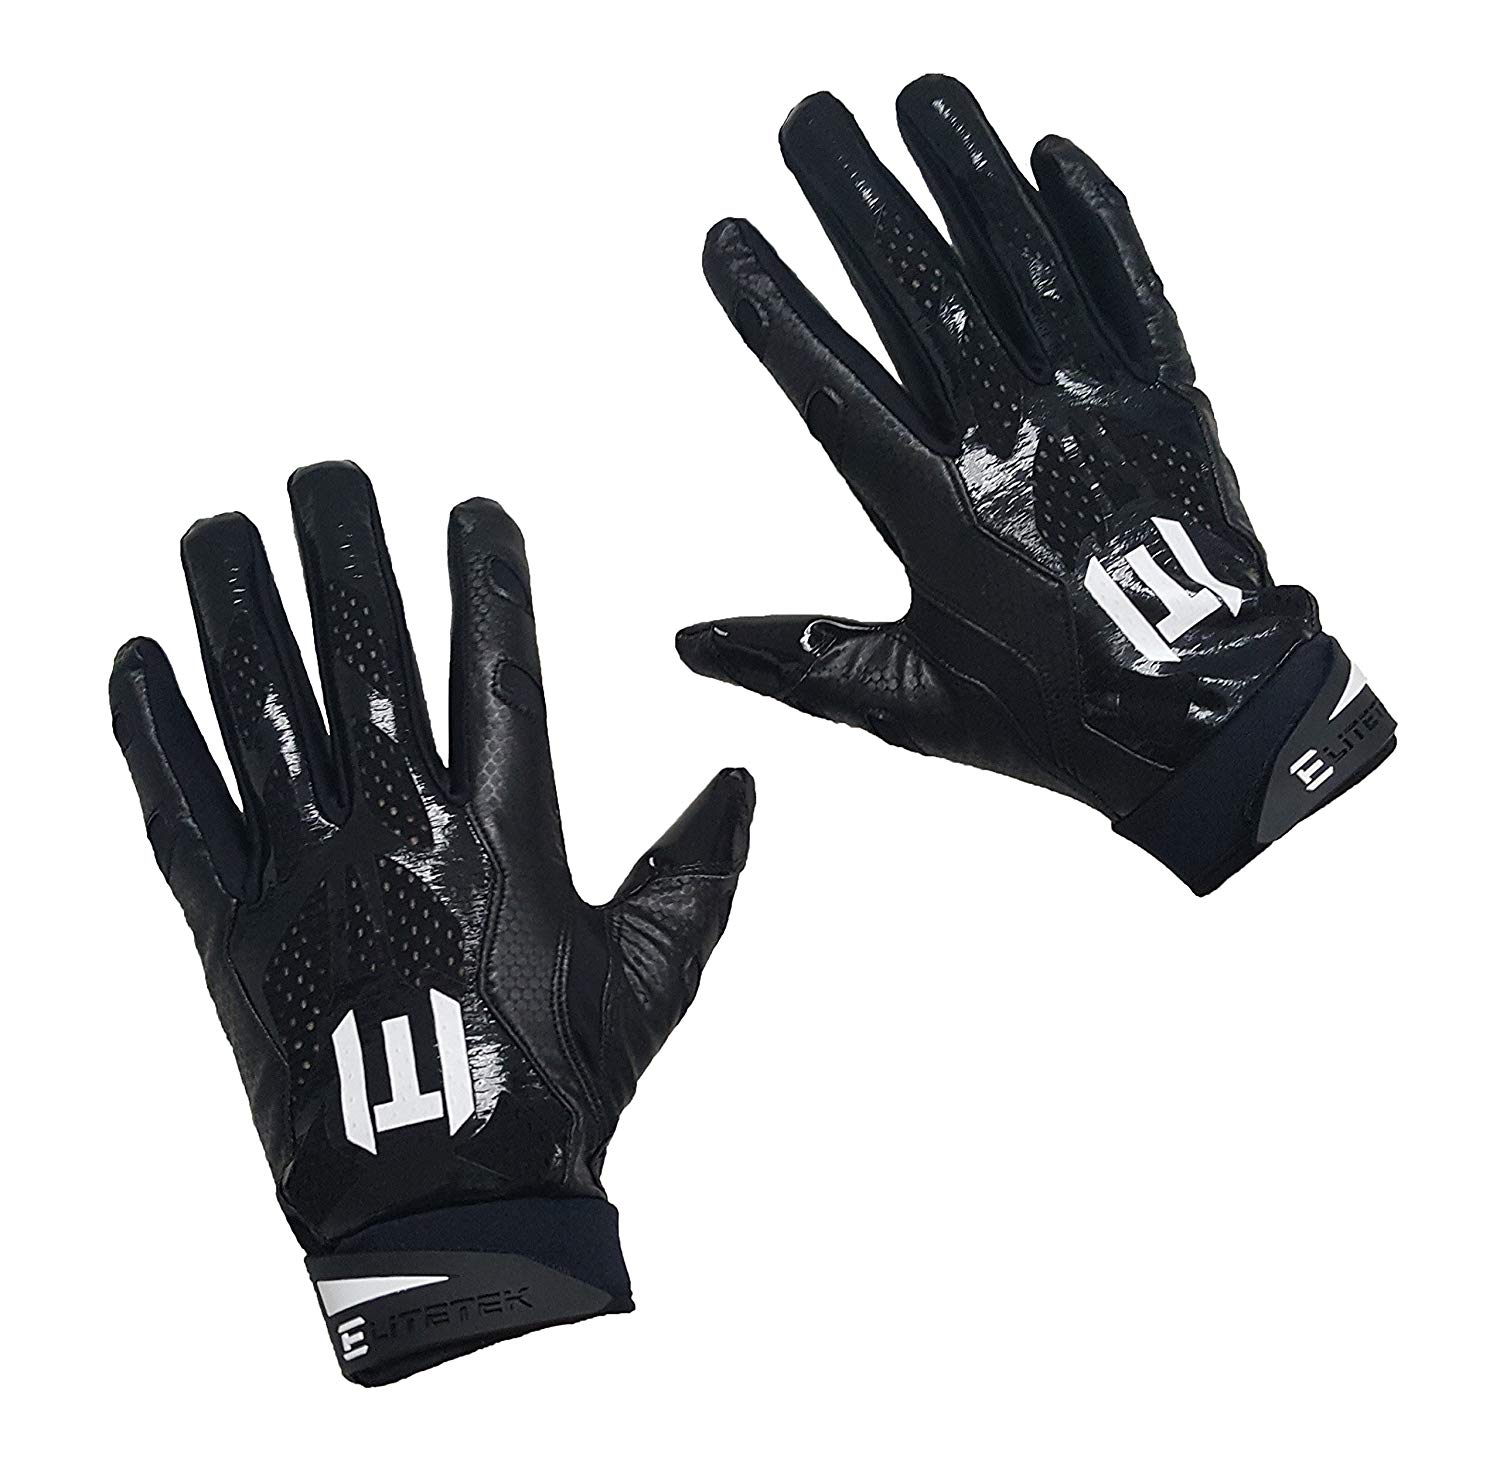 EliteTek E-17 Football Gloves Youth & Adult